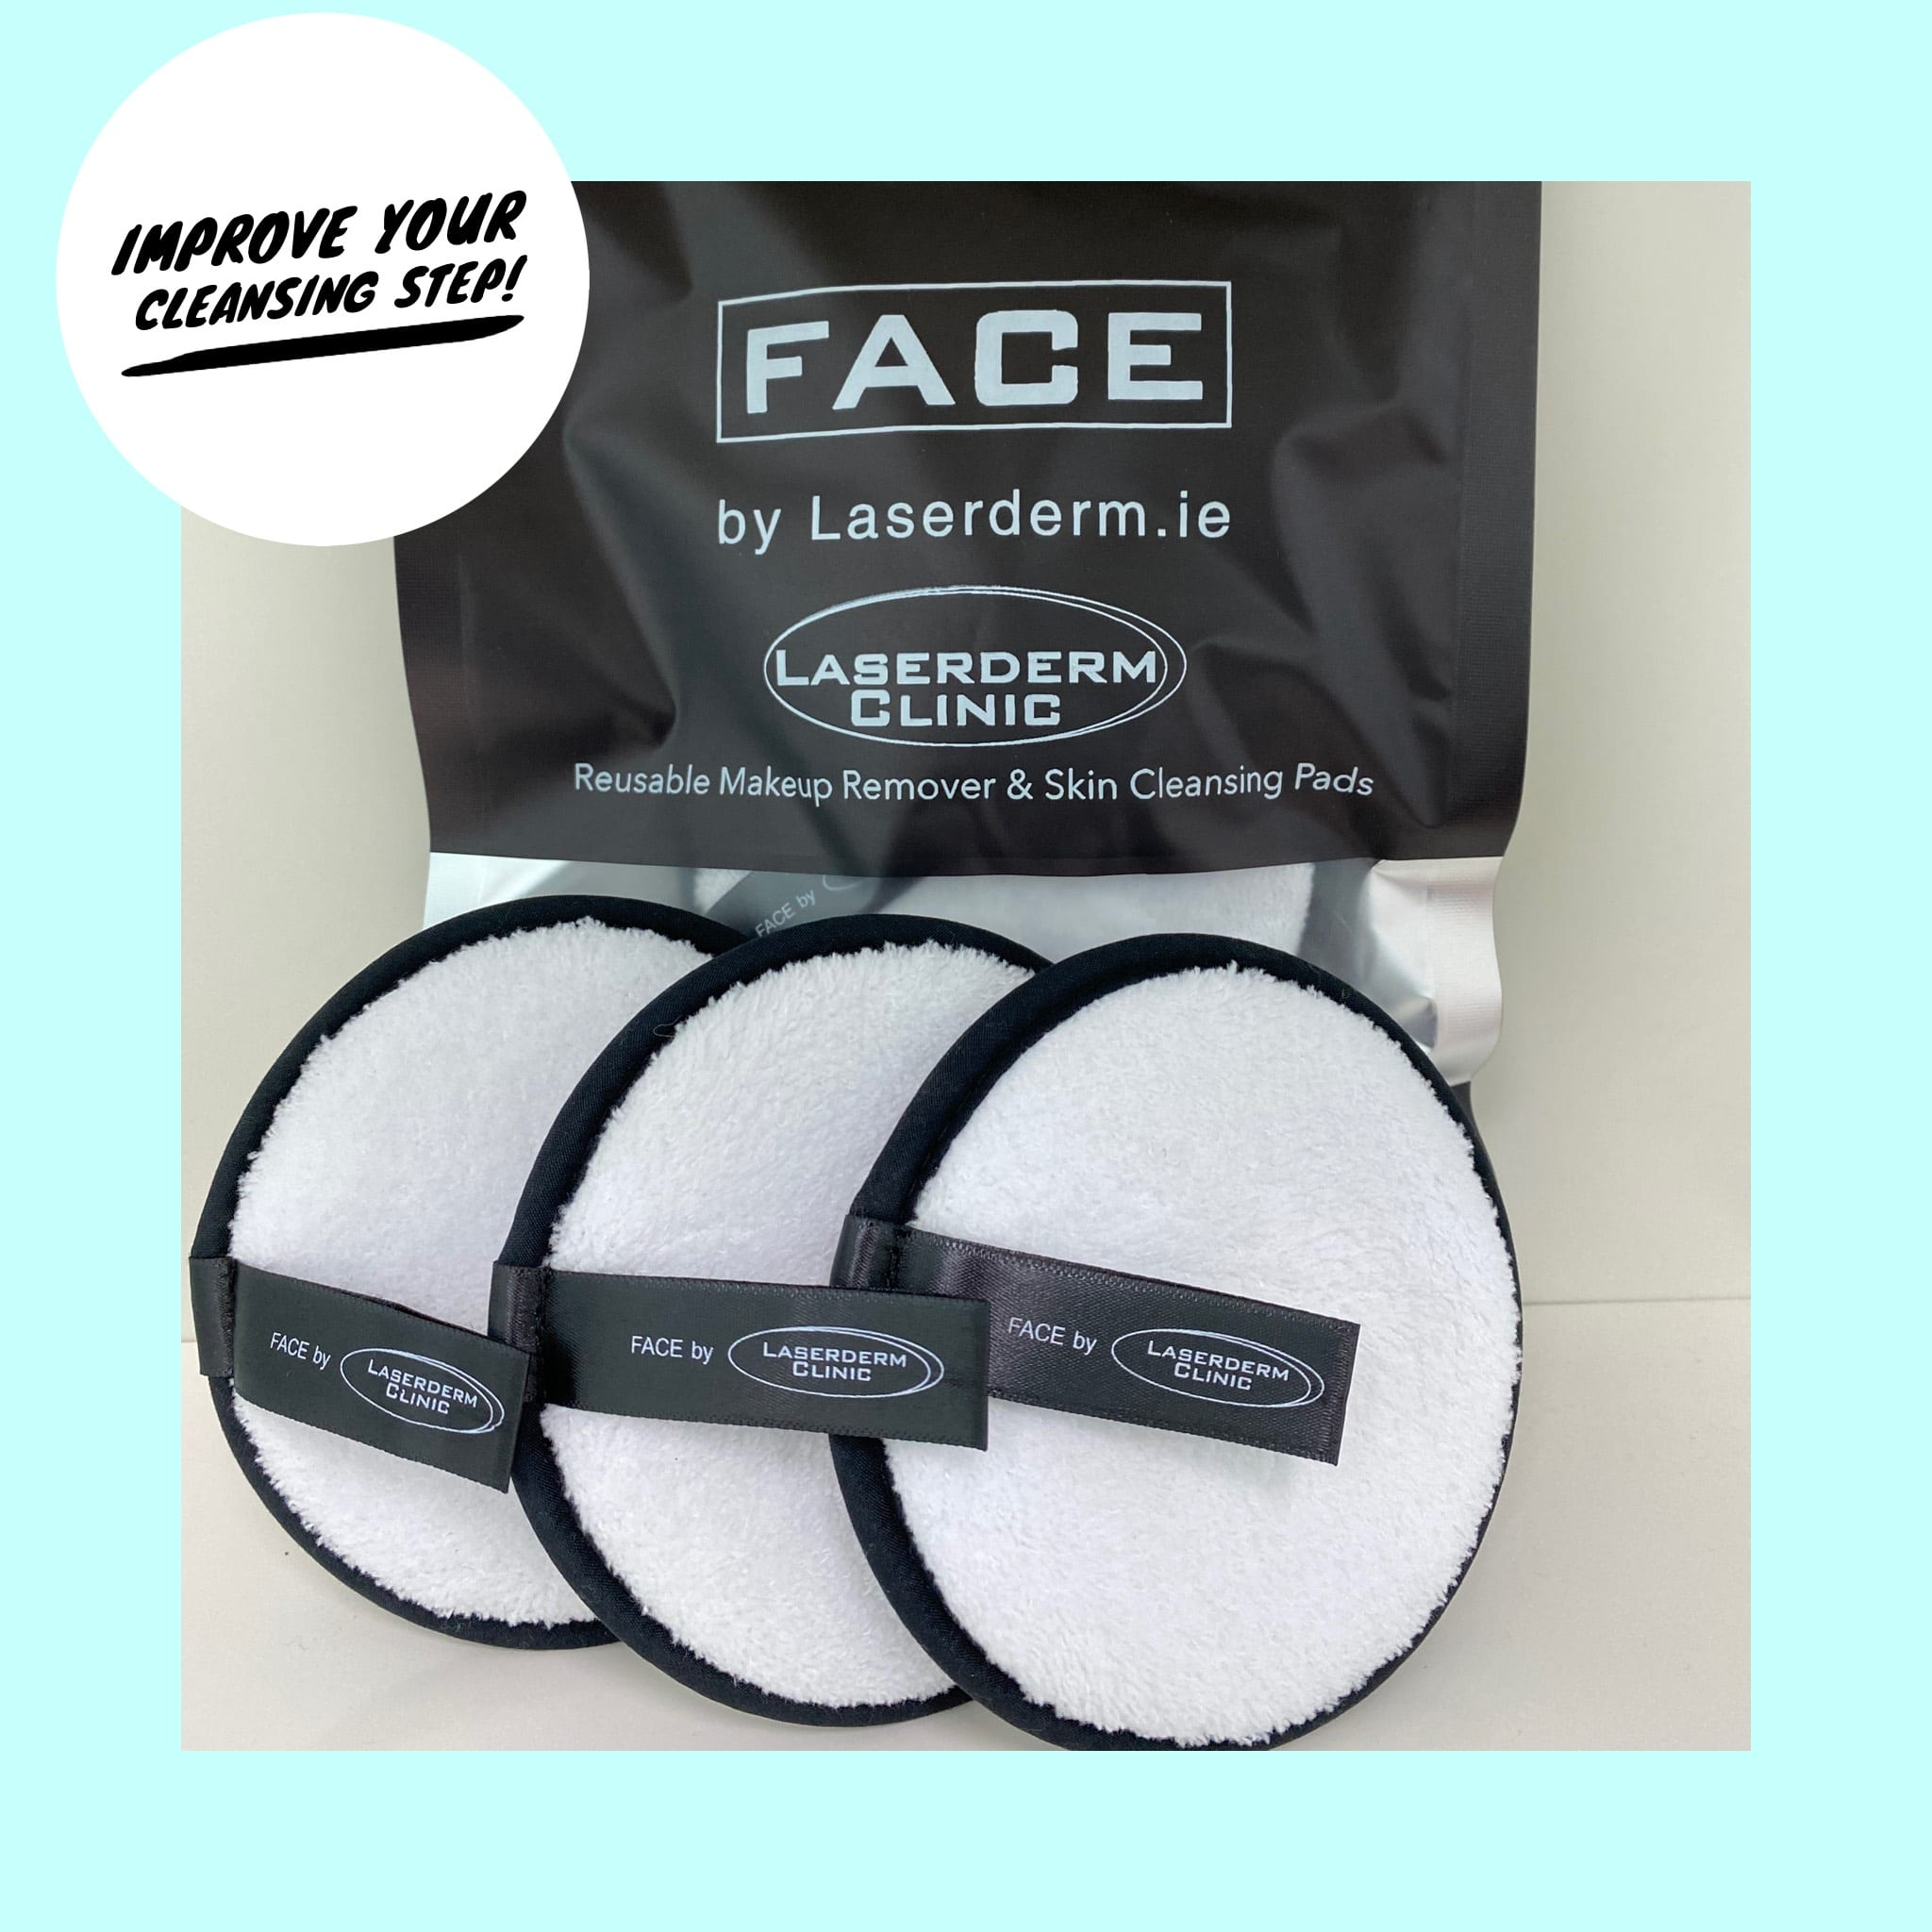 a.    FACE reusable cleansing pads